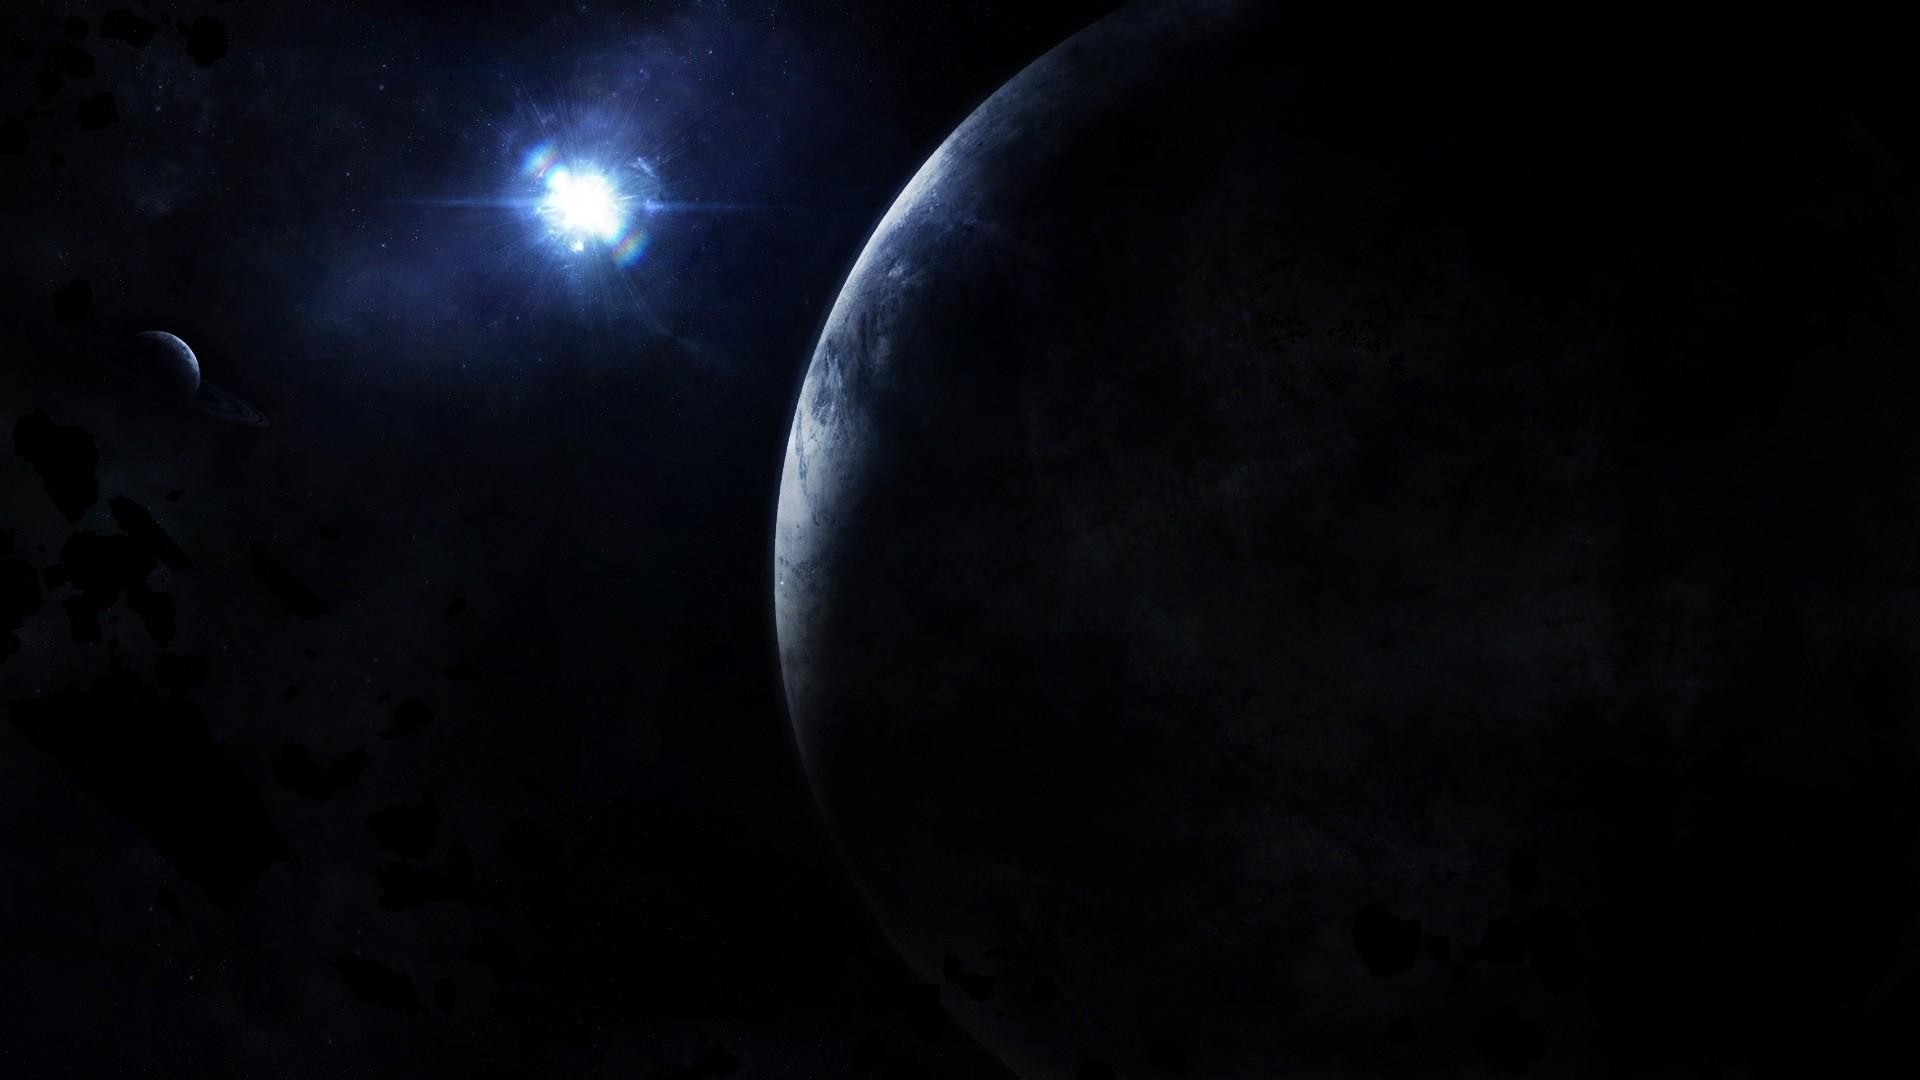 Dark Space Wallpaper 1920x1080